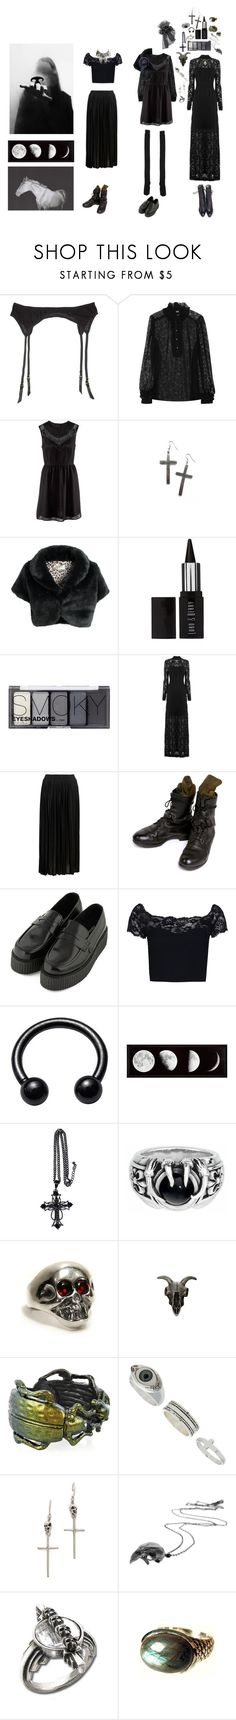 """Untitled #167"" by kevlartunga ❤ liked on Polyvore featuring Maison Close, D&G, H&M, Star by Julien Macdonald, Lord & Berry, Gestuz, Topshop, Boohoo, AllSaints and Bottega Veneta"